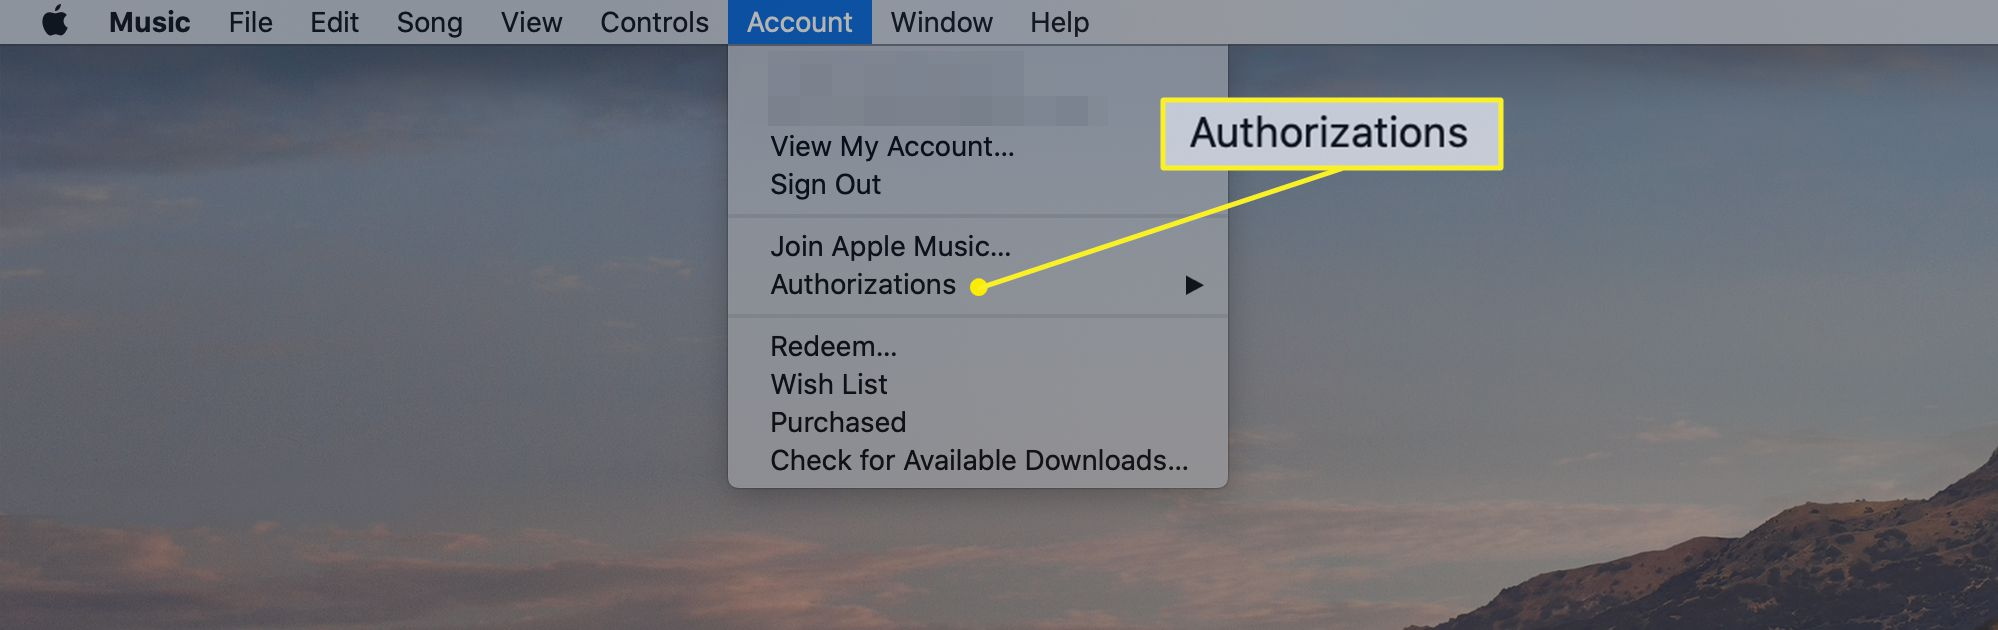 Music menu bar with Account selected and Authorizations chosen